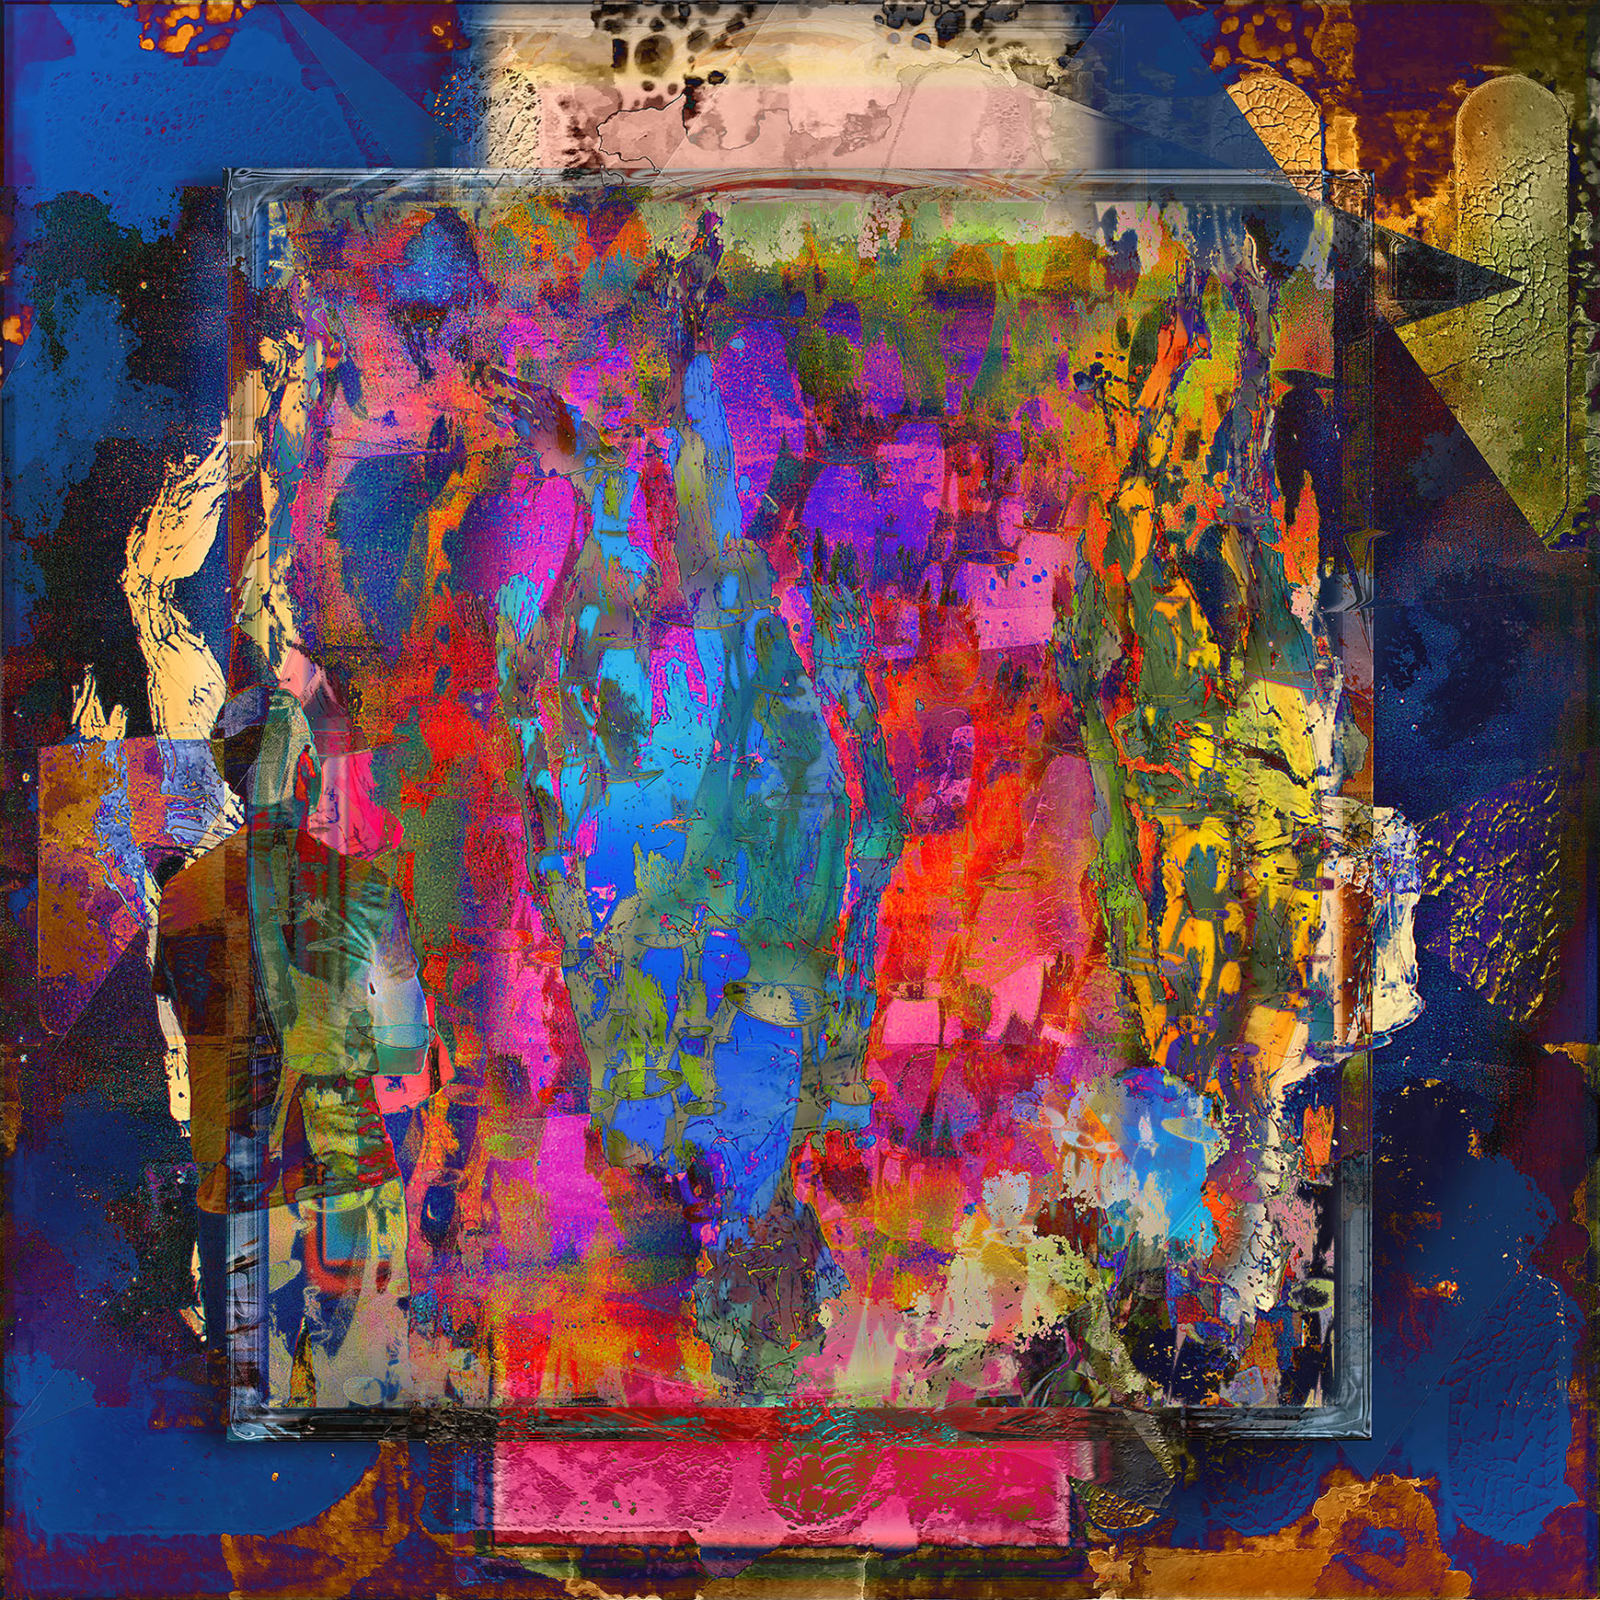 Jens-Christian Wittig, Framed Color World I, 2019